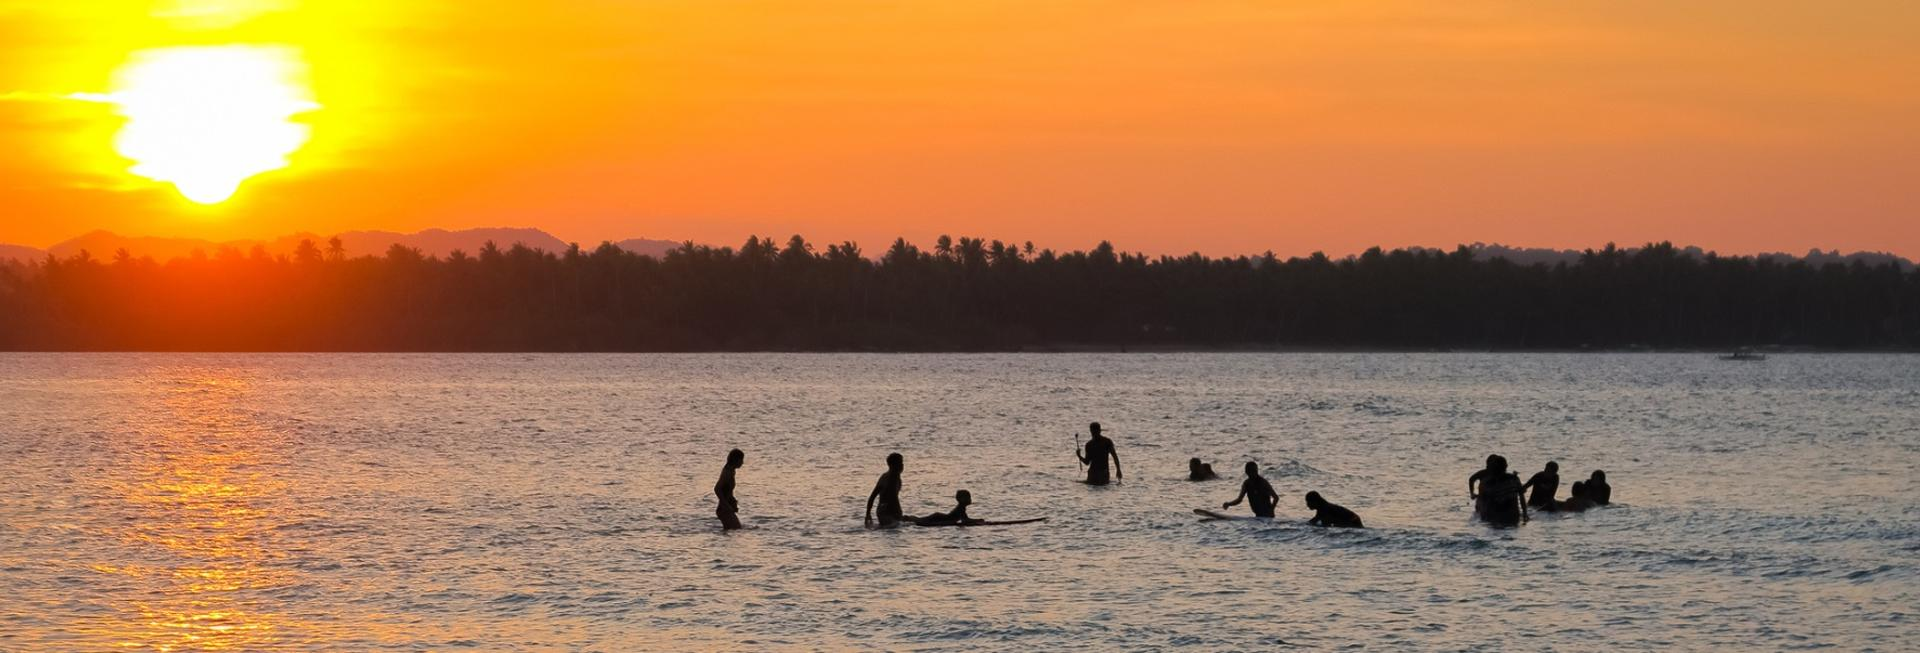 Surfing, Siargao, the Philippines